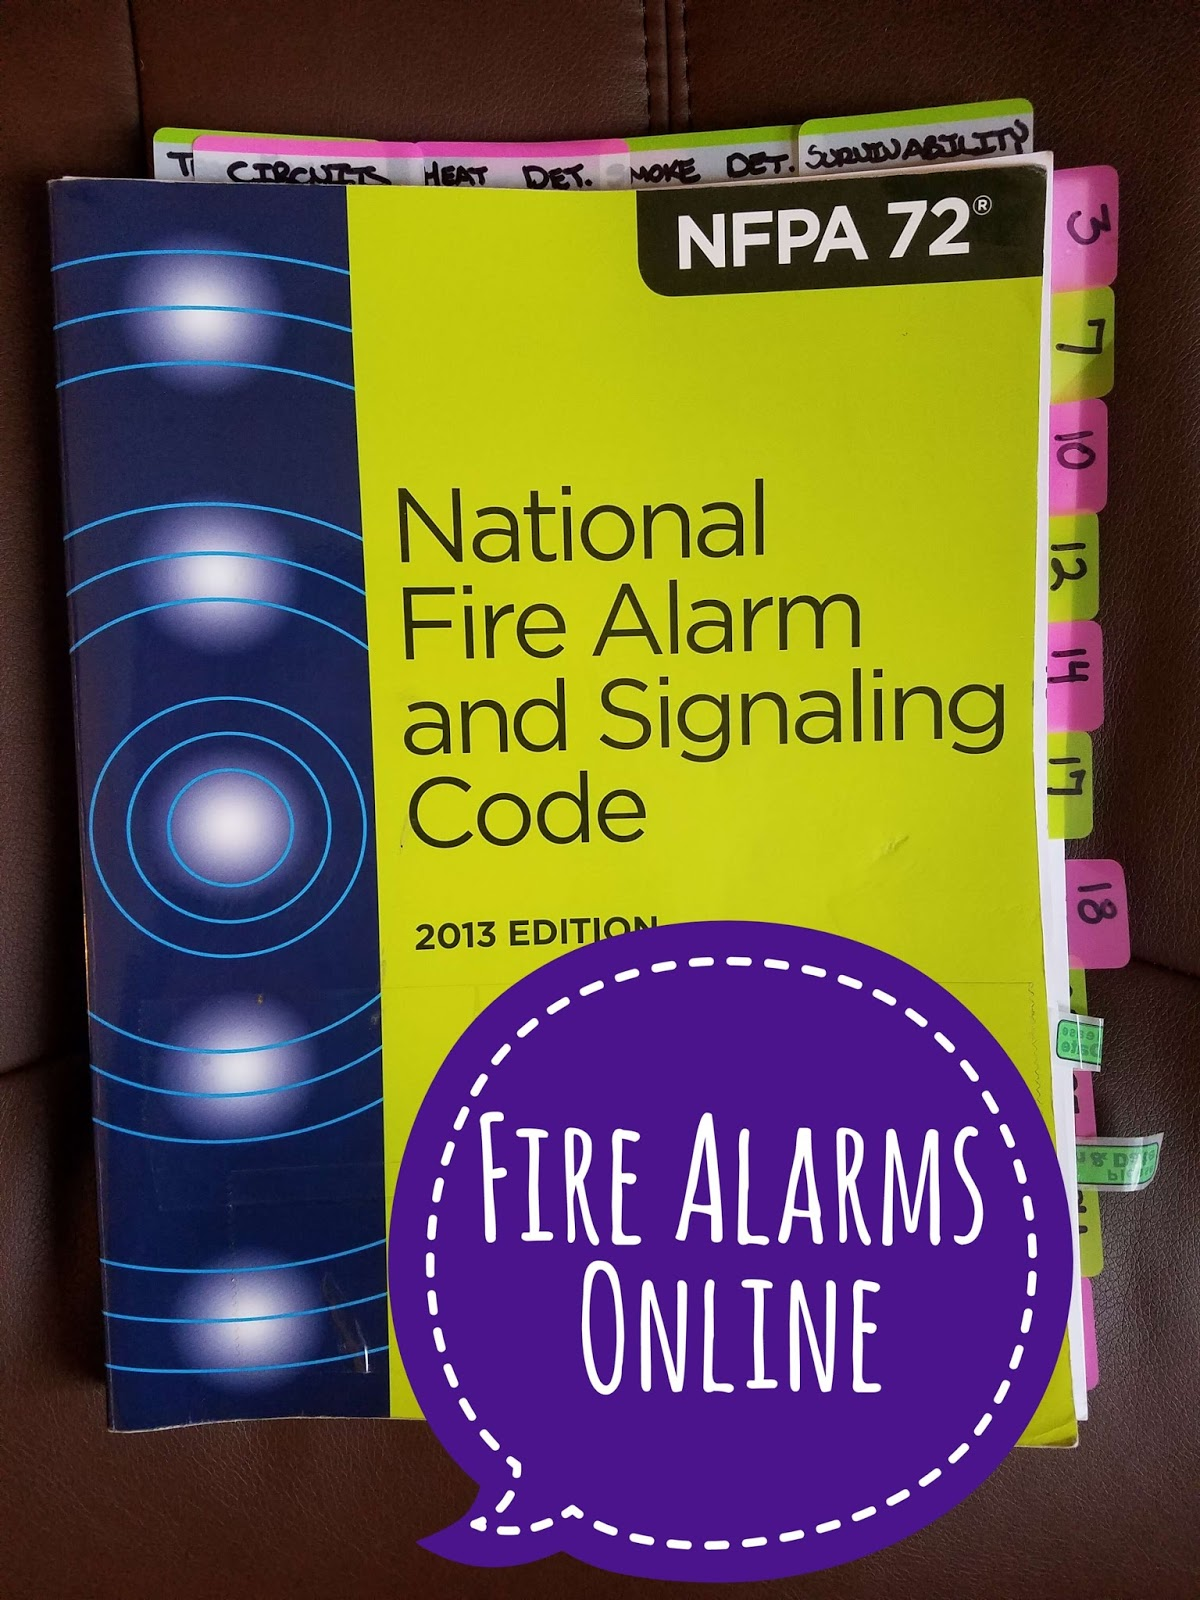 Nfpa 72 Tabs For Nicet Exam Fire Alarms Online